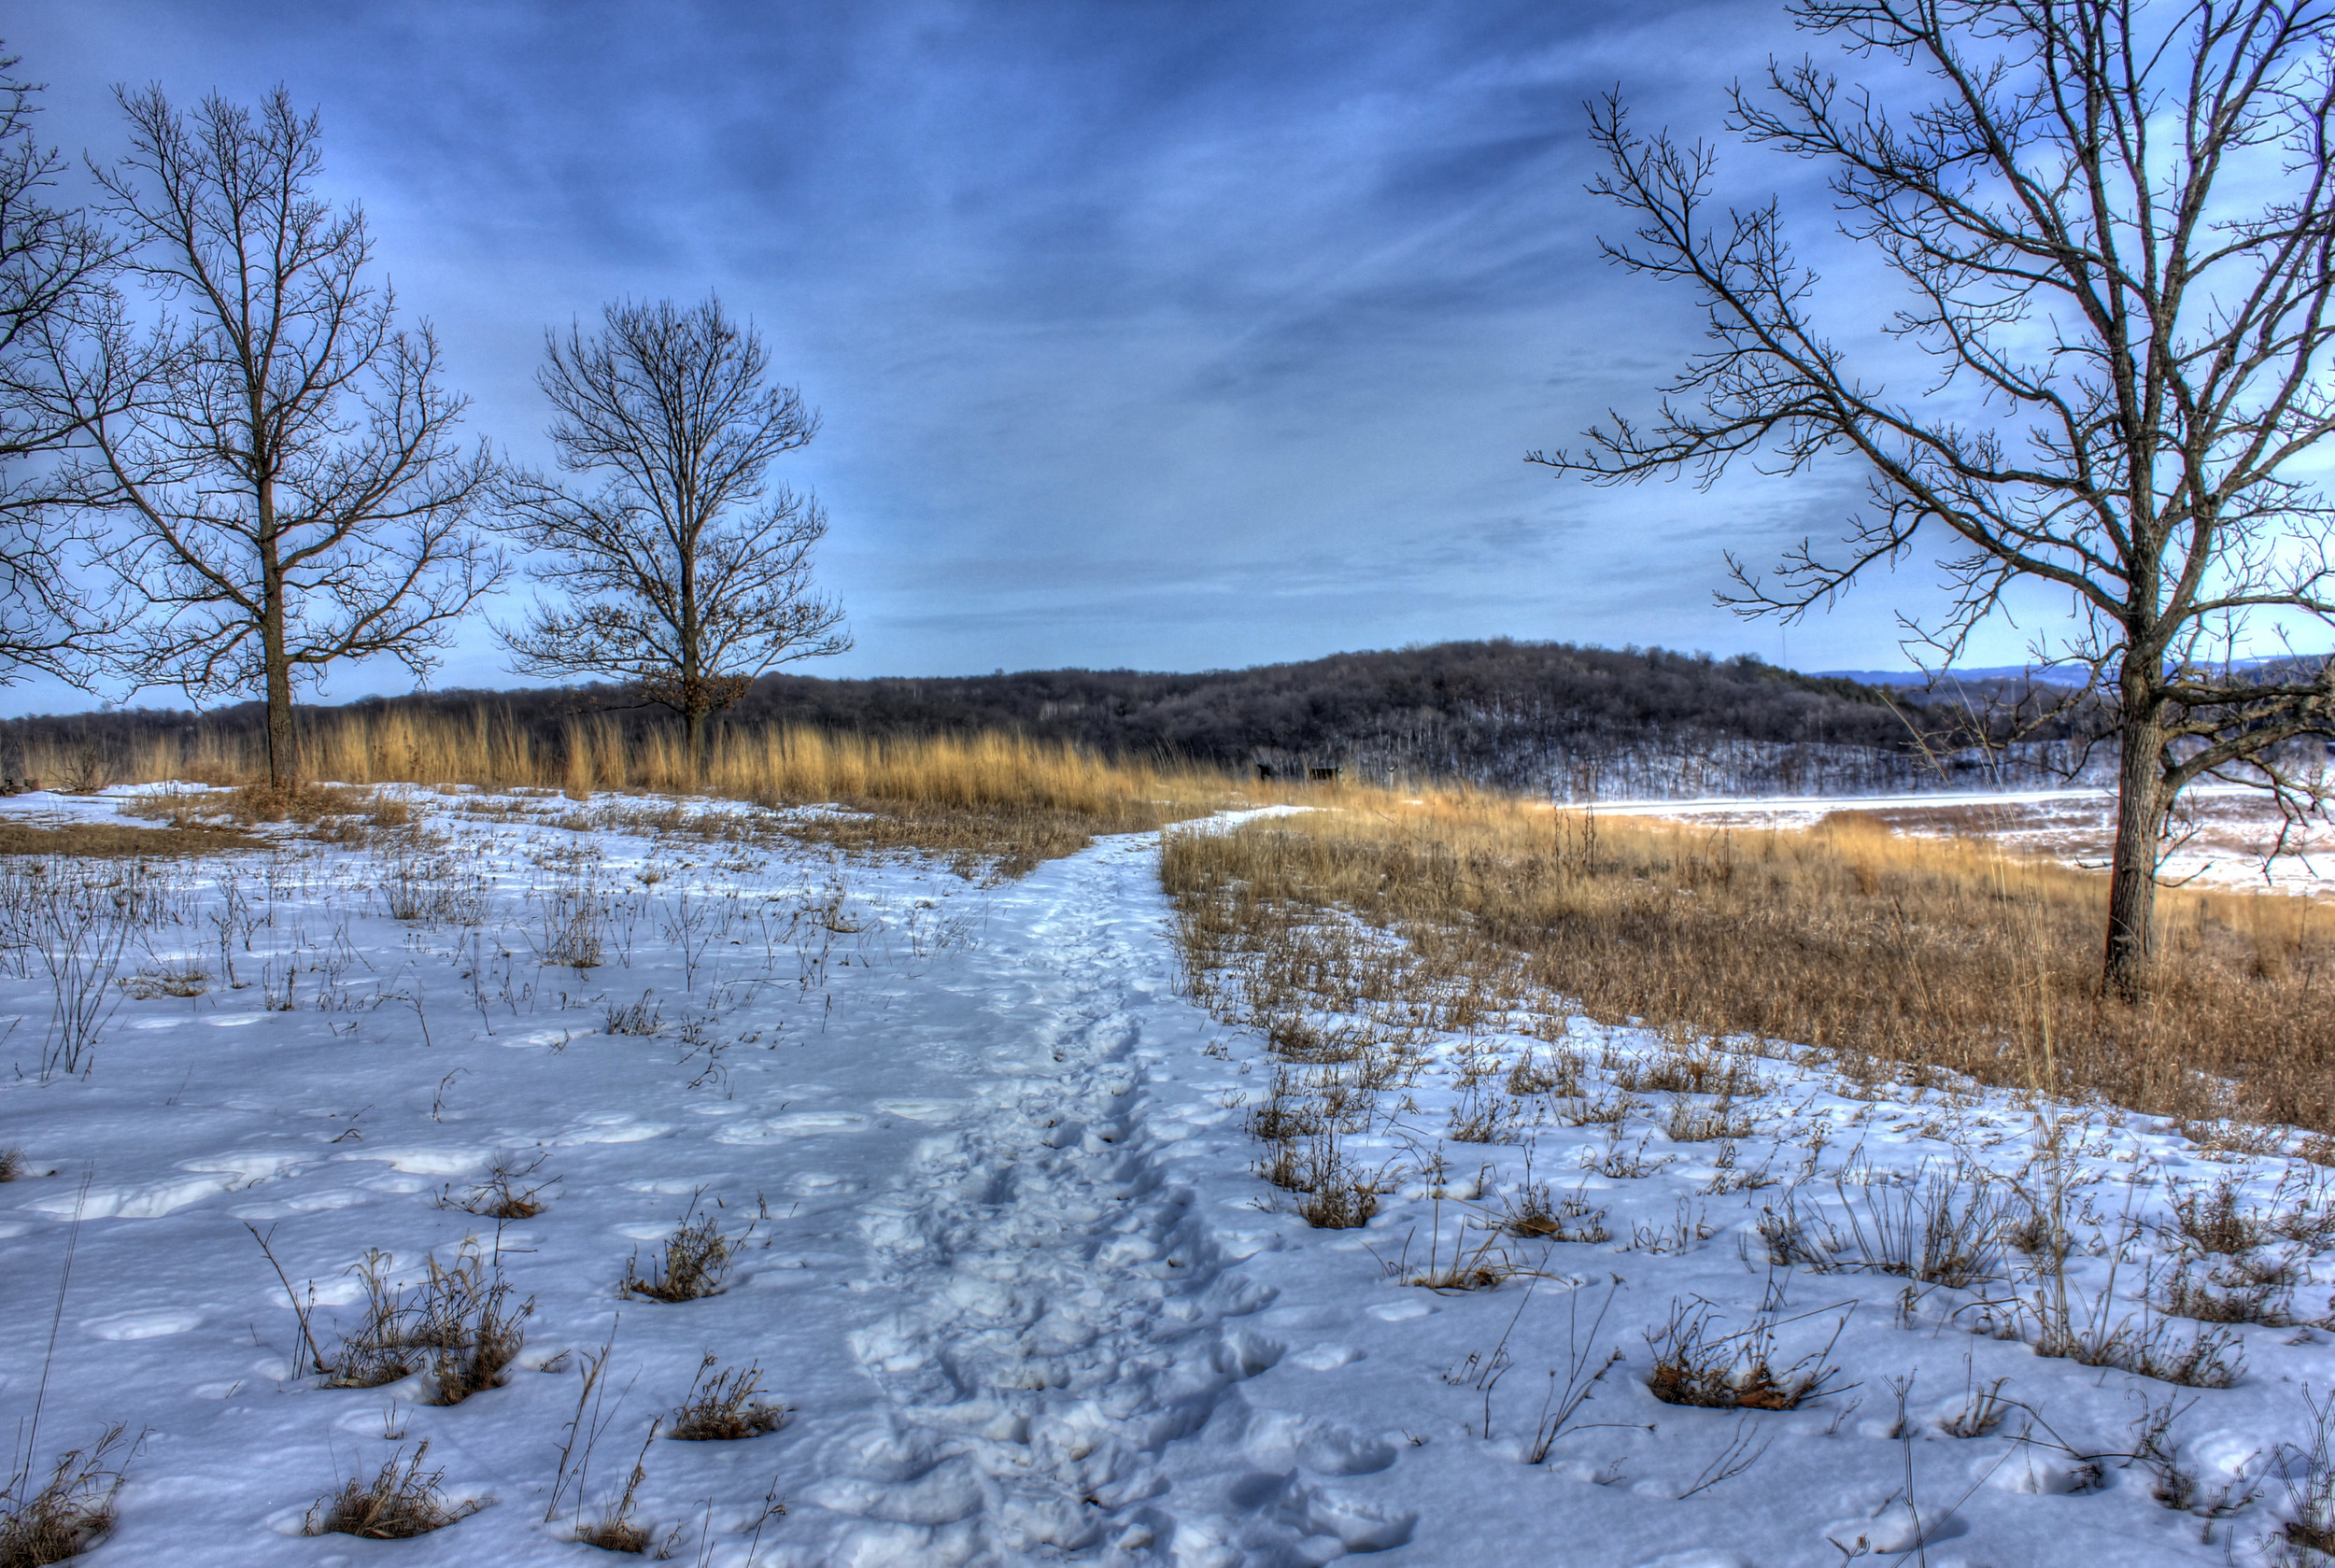 wisconsin-ice-age-trail-hiking-under-the-winter-sky.jpg